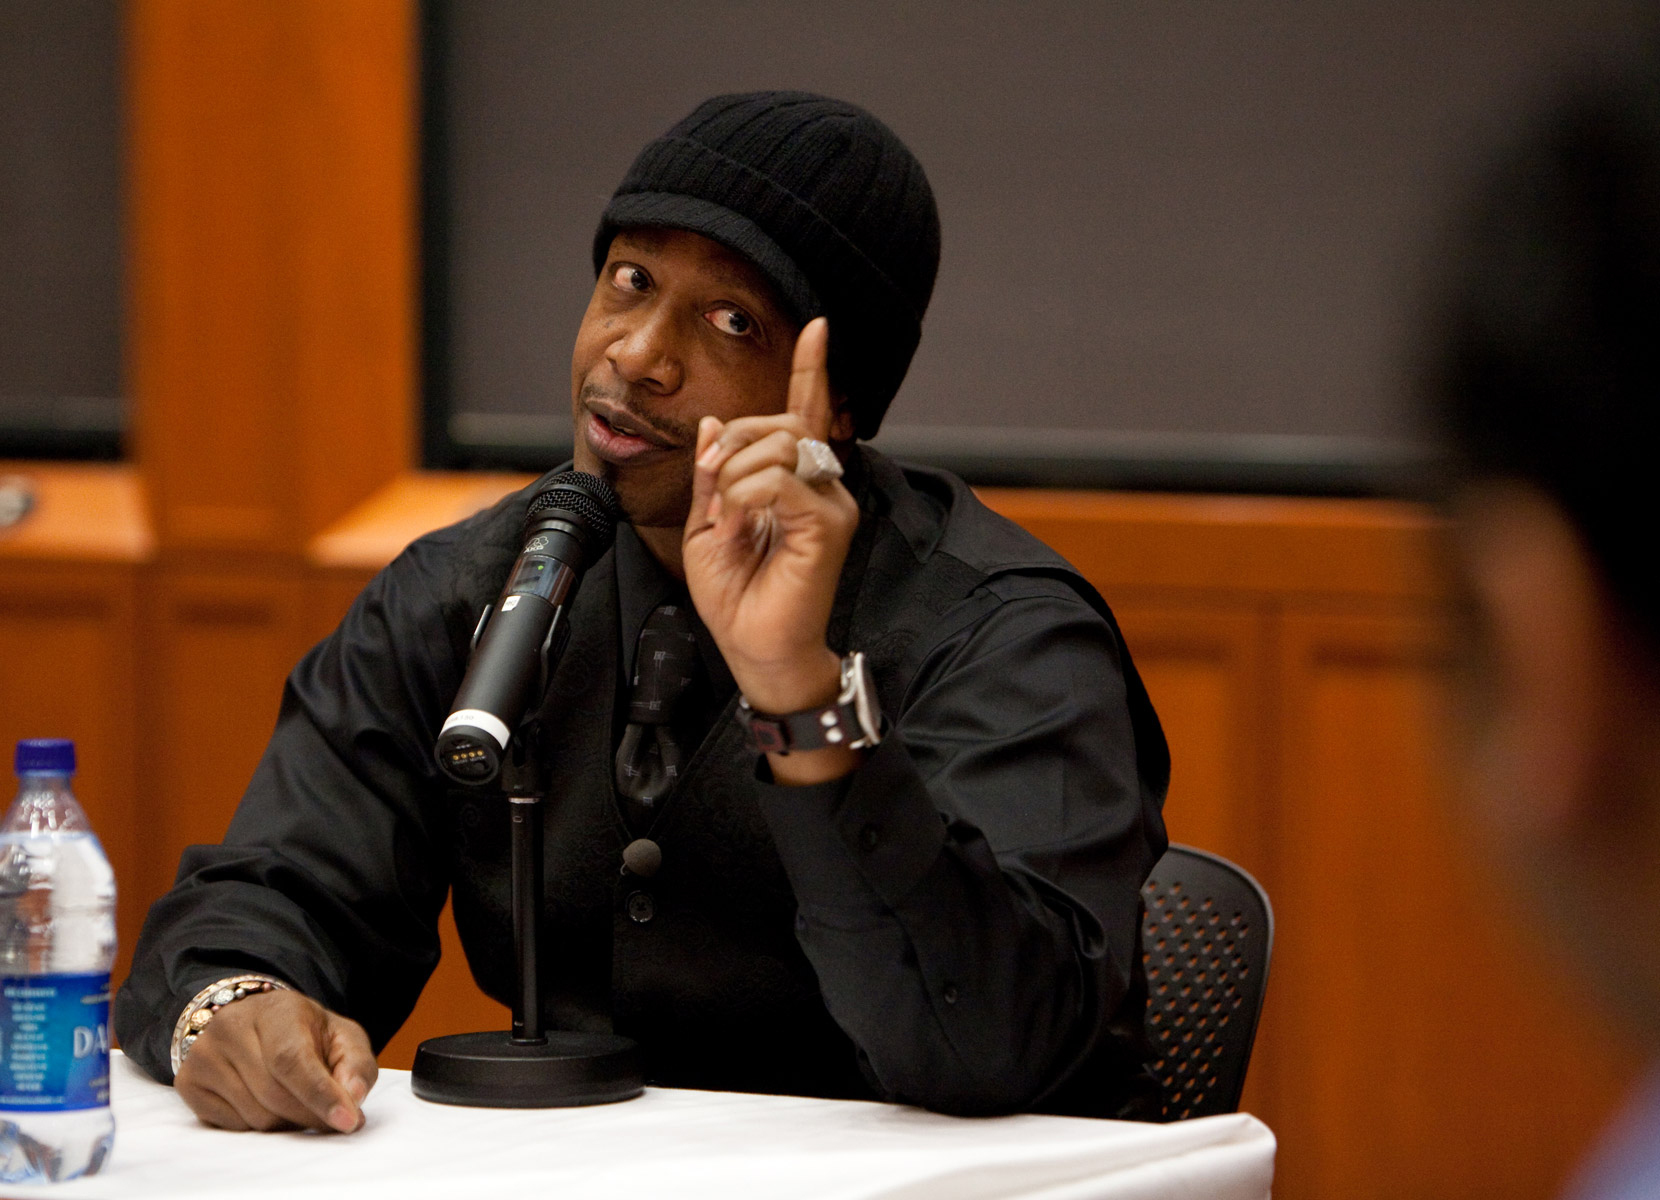 MC Hammer at Harvard Business School